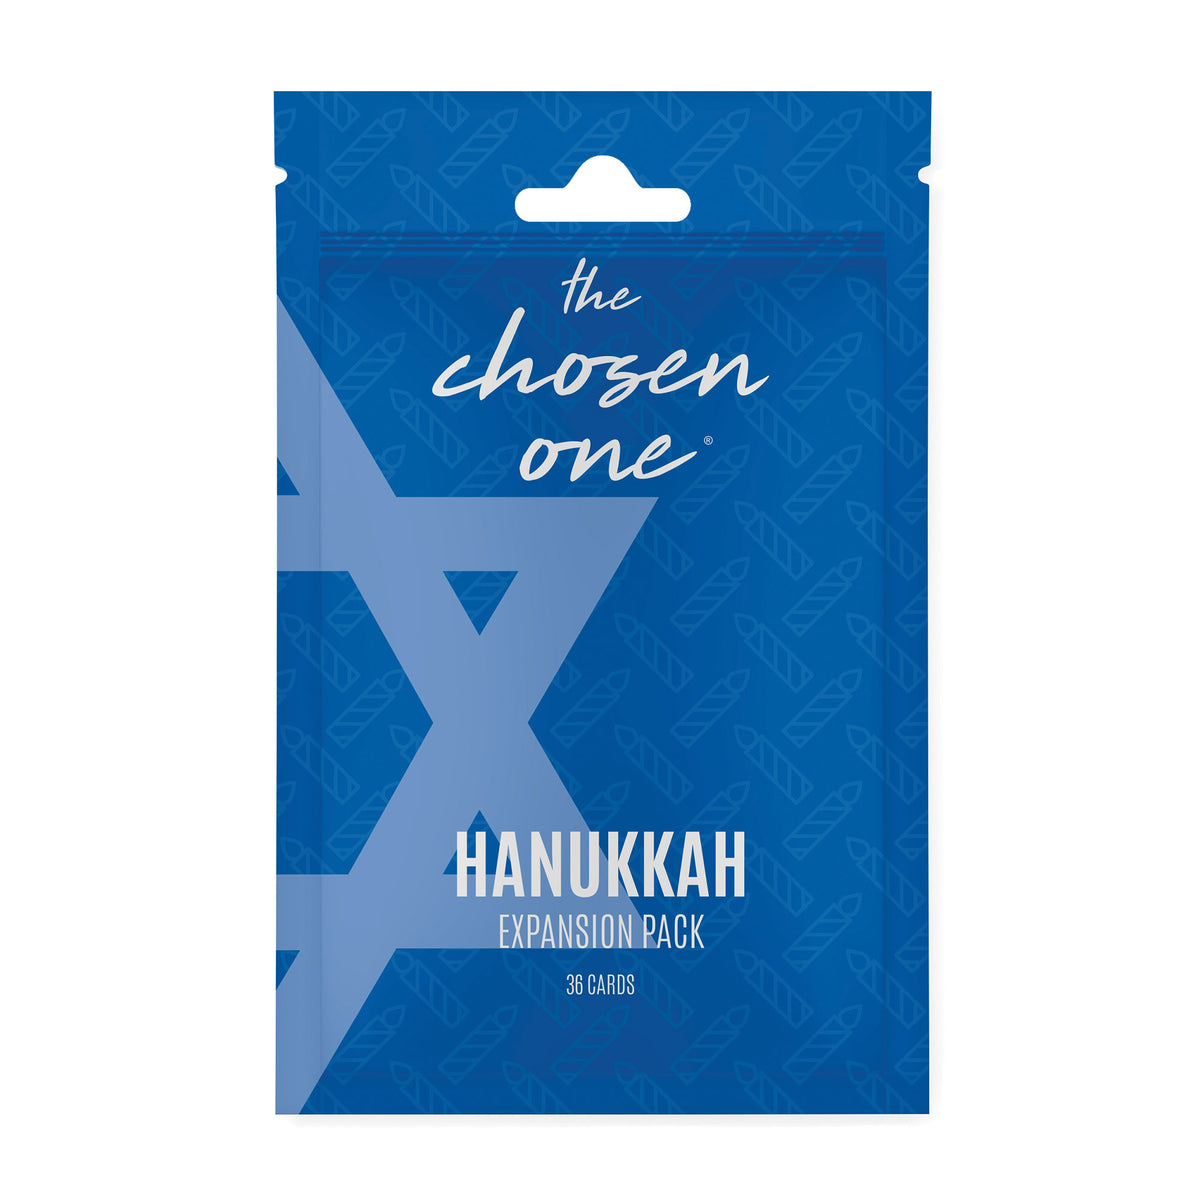 The Chosen One® - Hanukkah